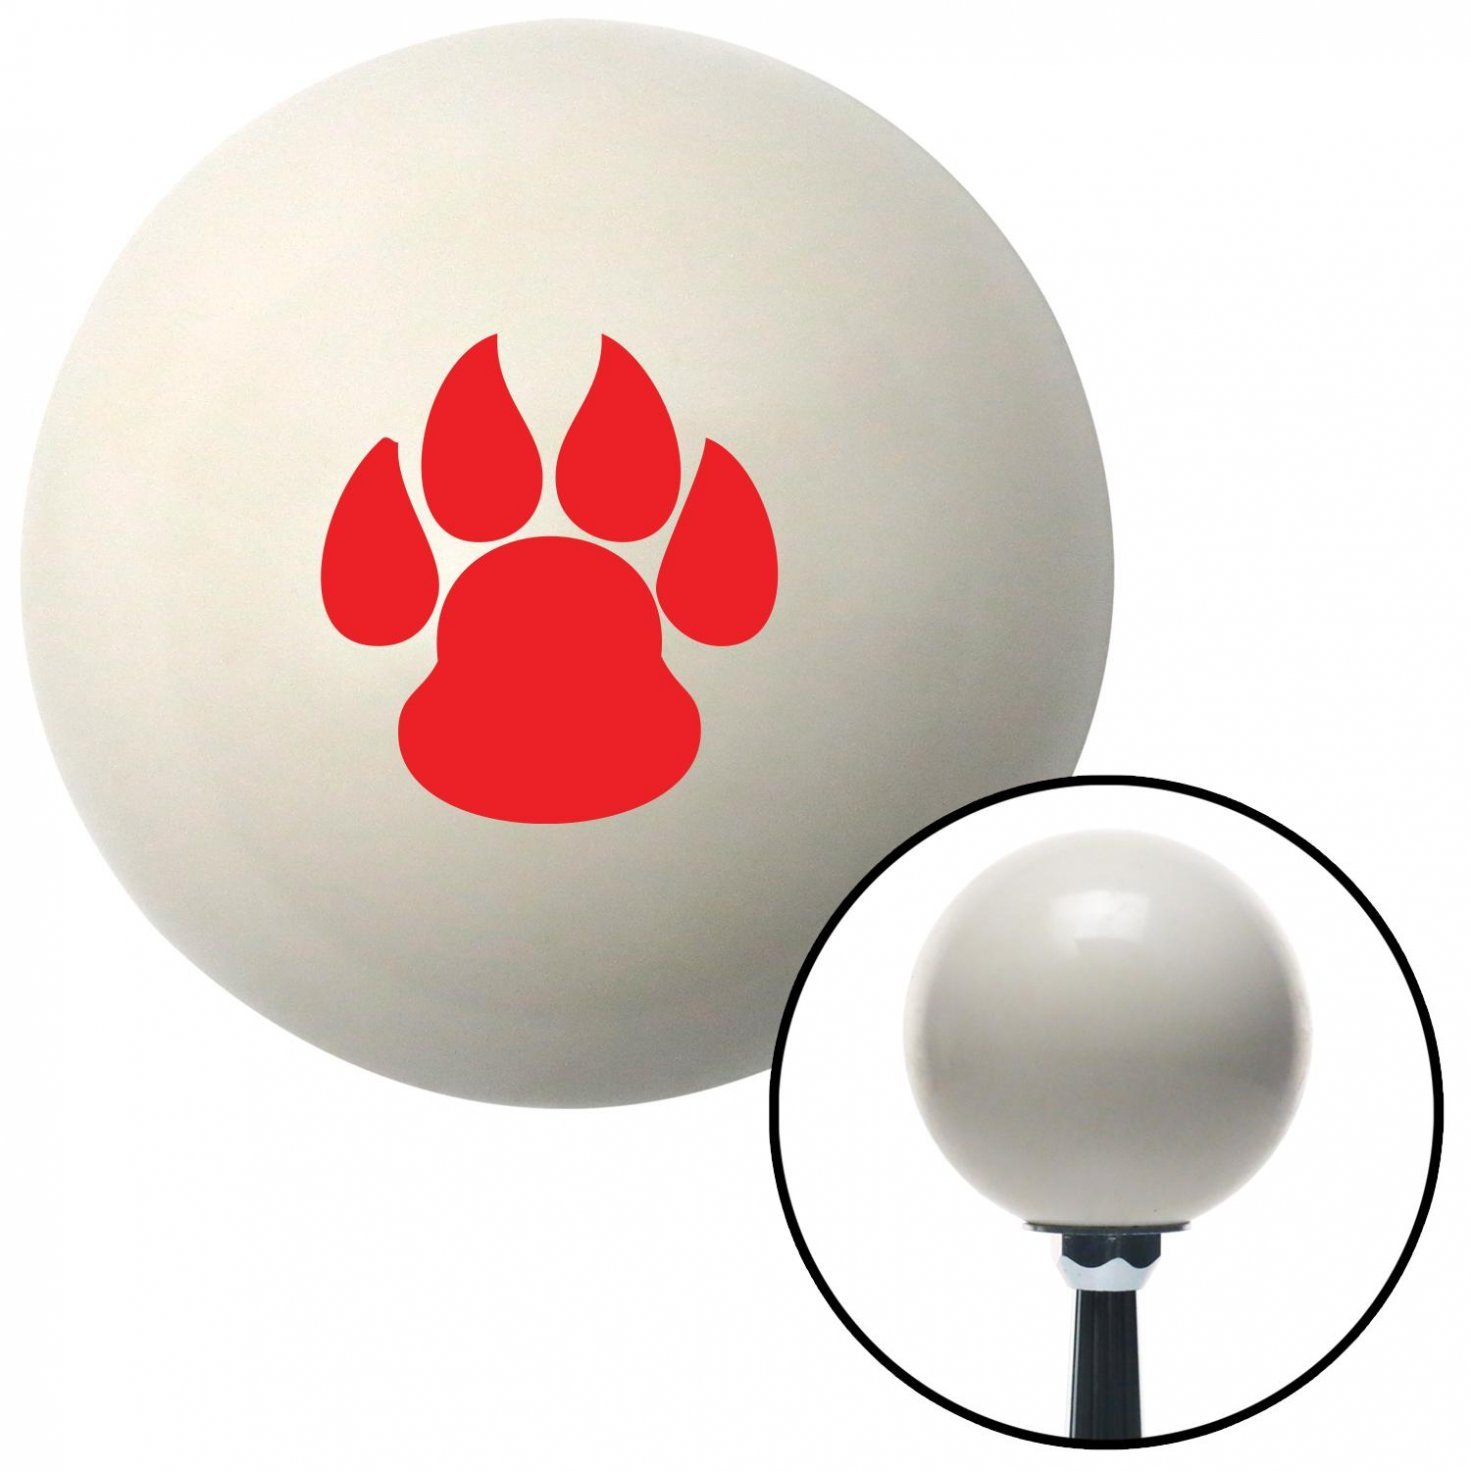 American Shifter 41292 Ivory Shift Knob with 16mm x 1.5 Insert Red Pawprint Sharp